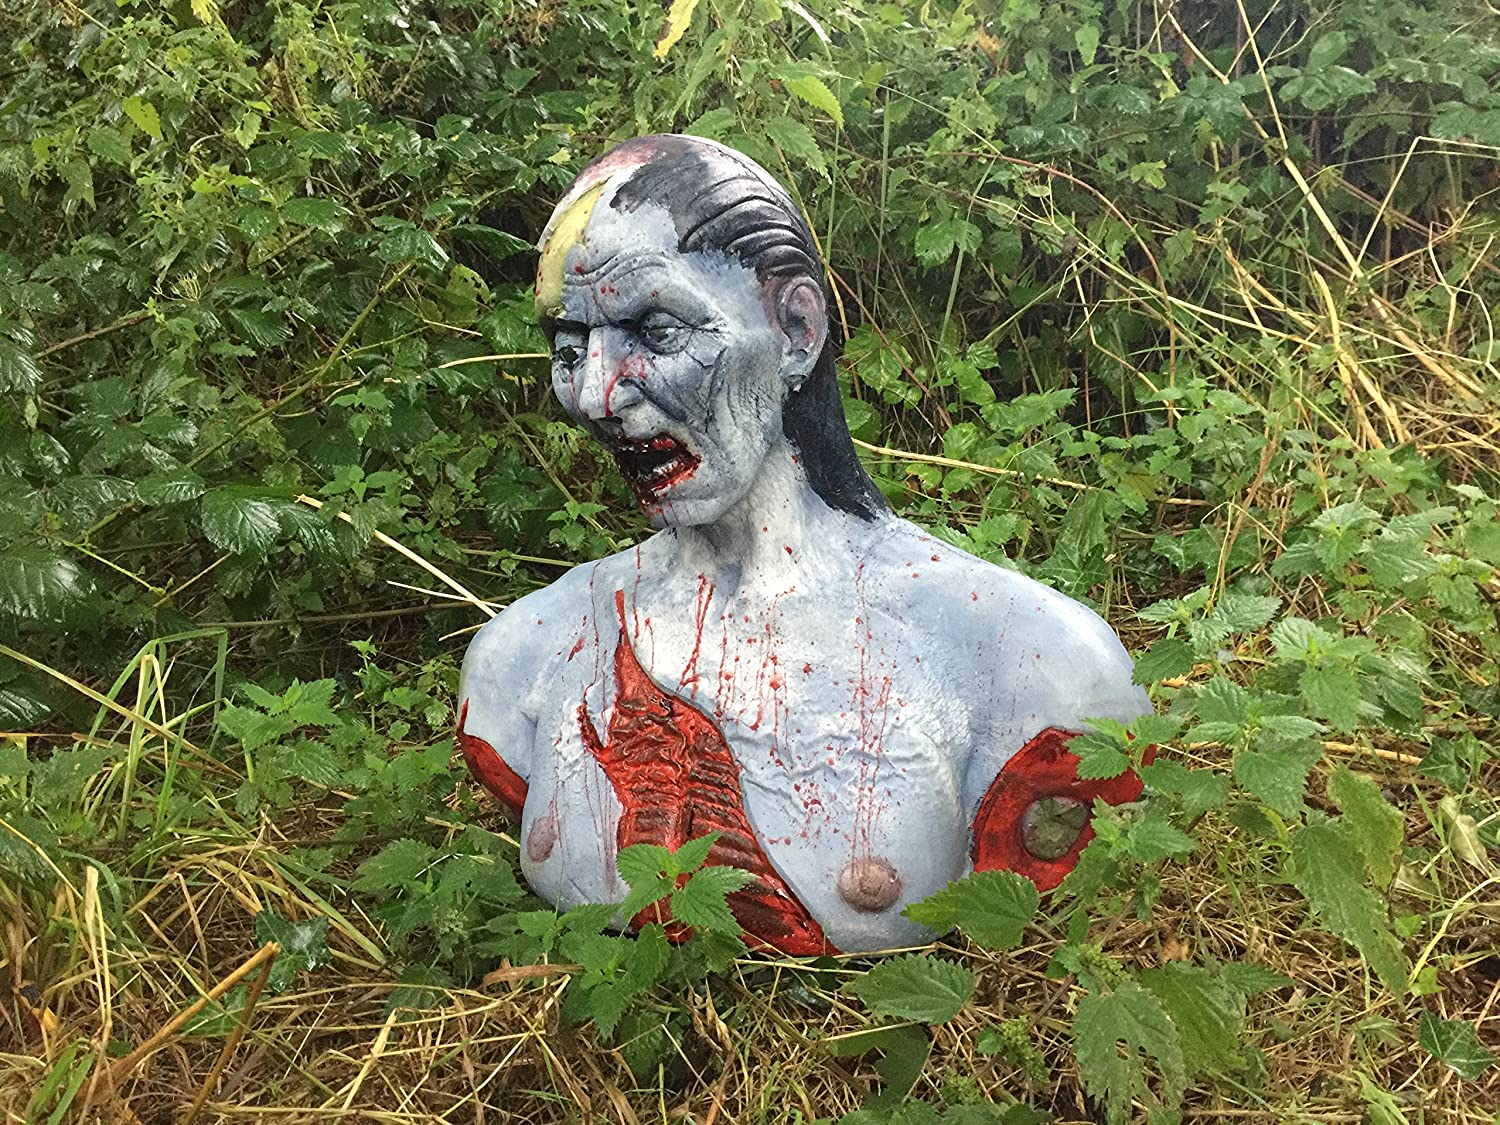 3D Zombie Archery Target Splattered in Blood Superb to Shoot!